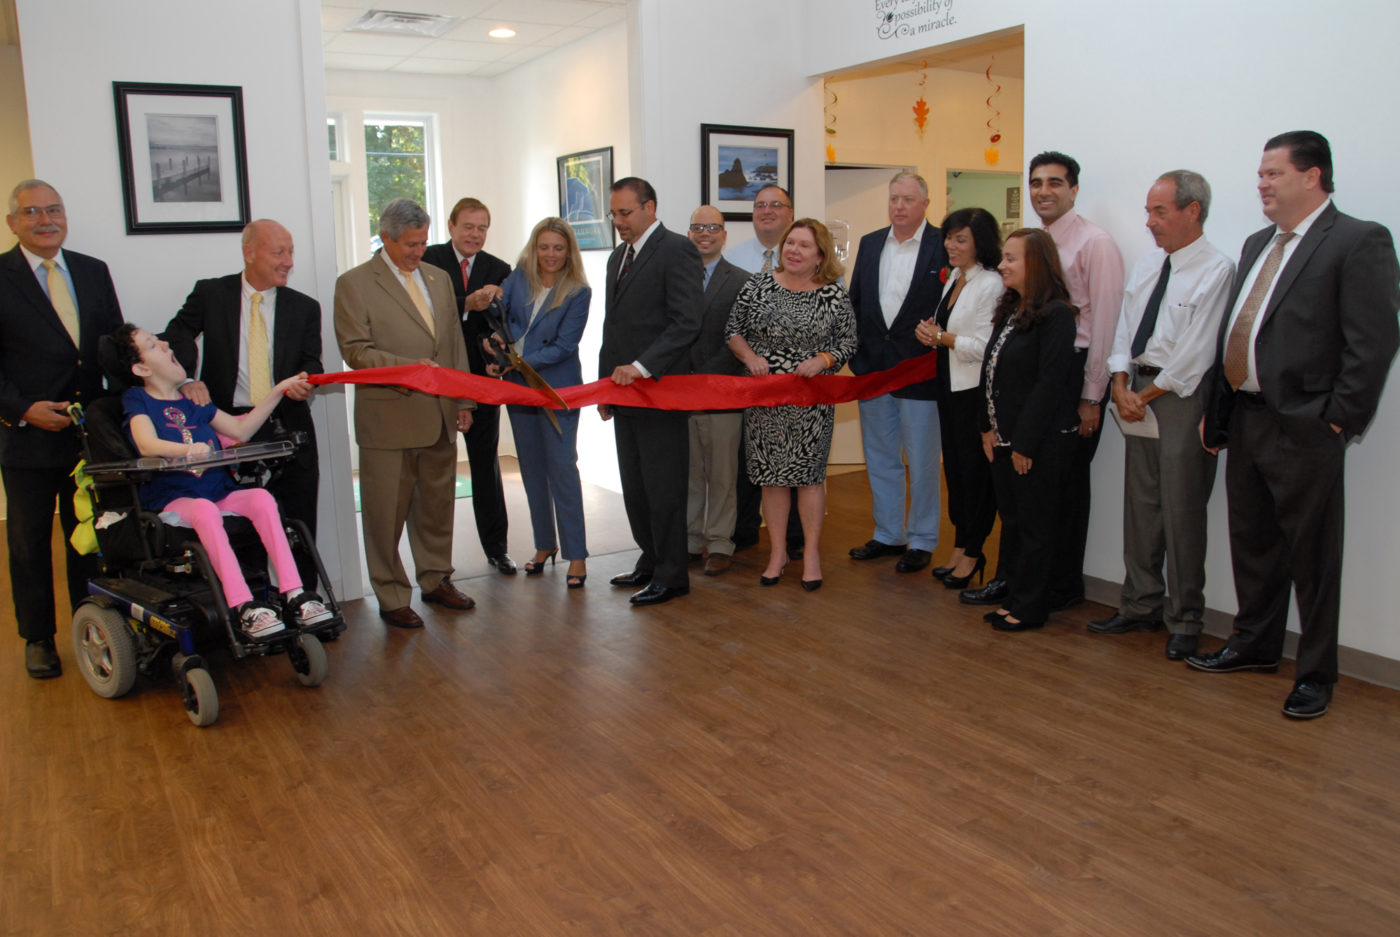 On September 8, 2016, Community Options opened its Second Ribbon Red Academy in New Jersey.